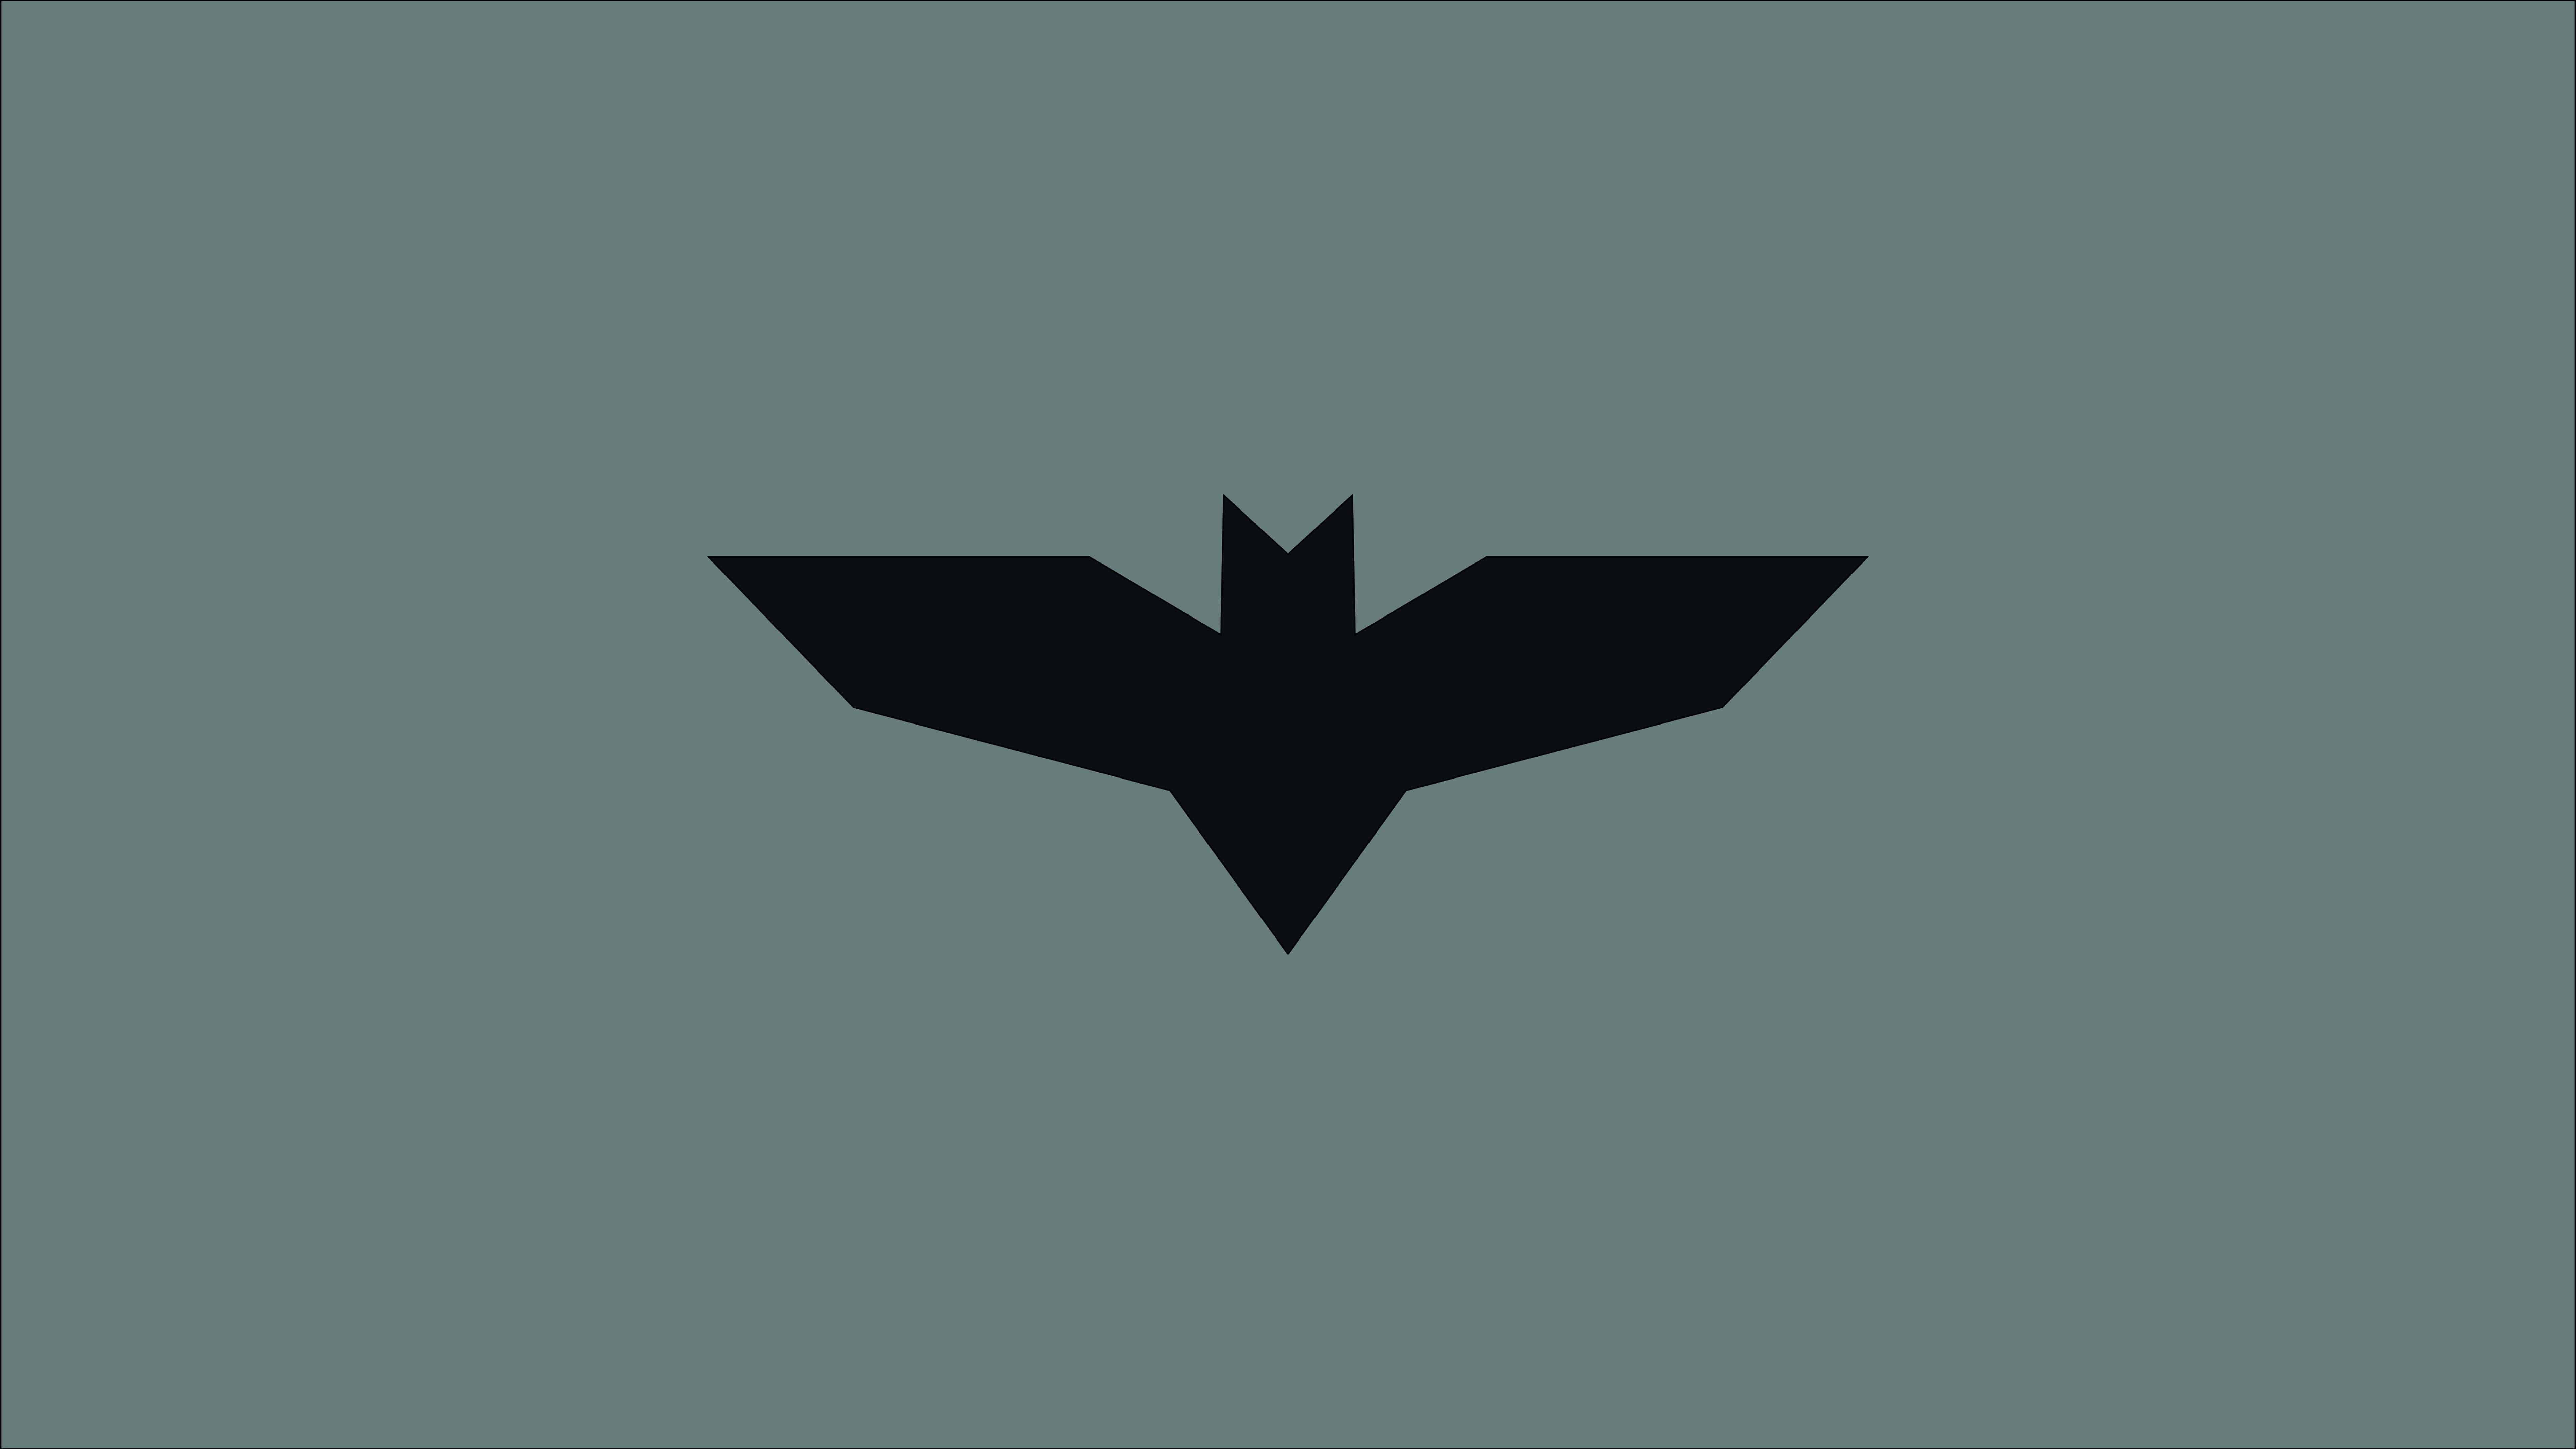 minimalism batman justice league logo uhd 8k wallpaper